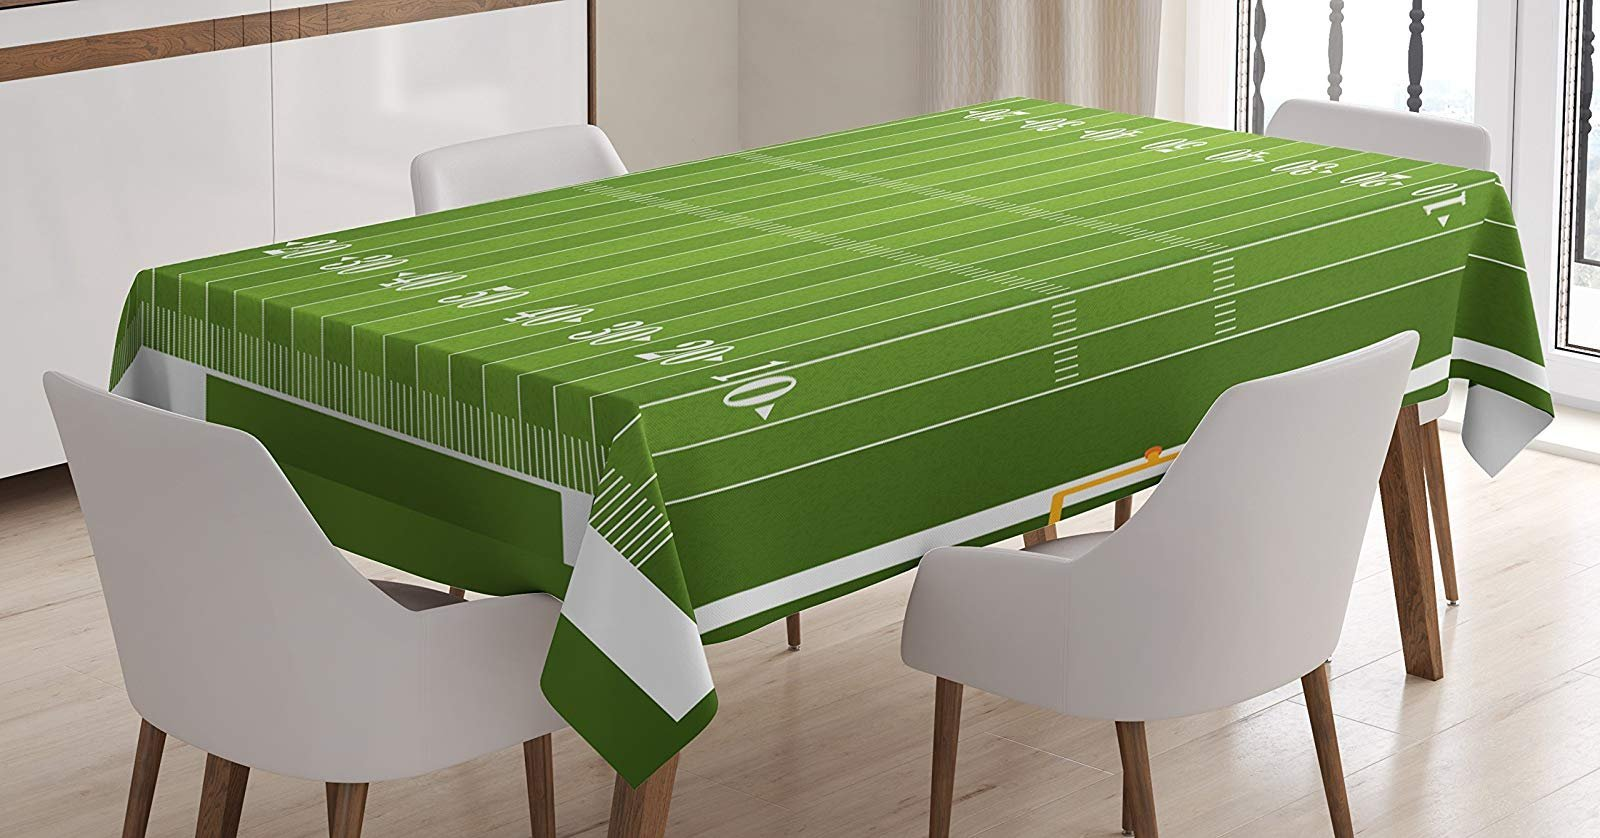 LEO BON Rectangle Tablecloth Sports Field in Green Gridiron Yard Competitive Games College Teamwork Superbowl Cotton Linen Table Cover for Kitchen Dinning Tabletop Decoration 60X120inch by LEO BON (Image #1)